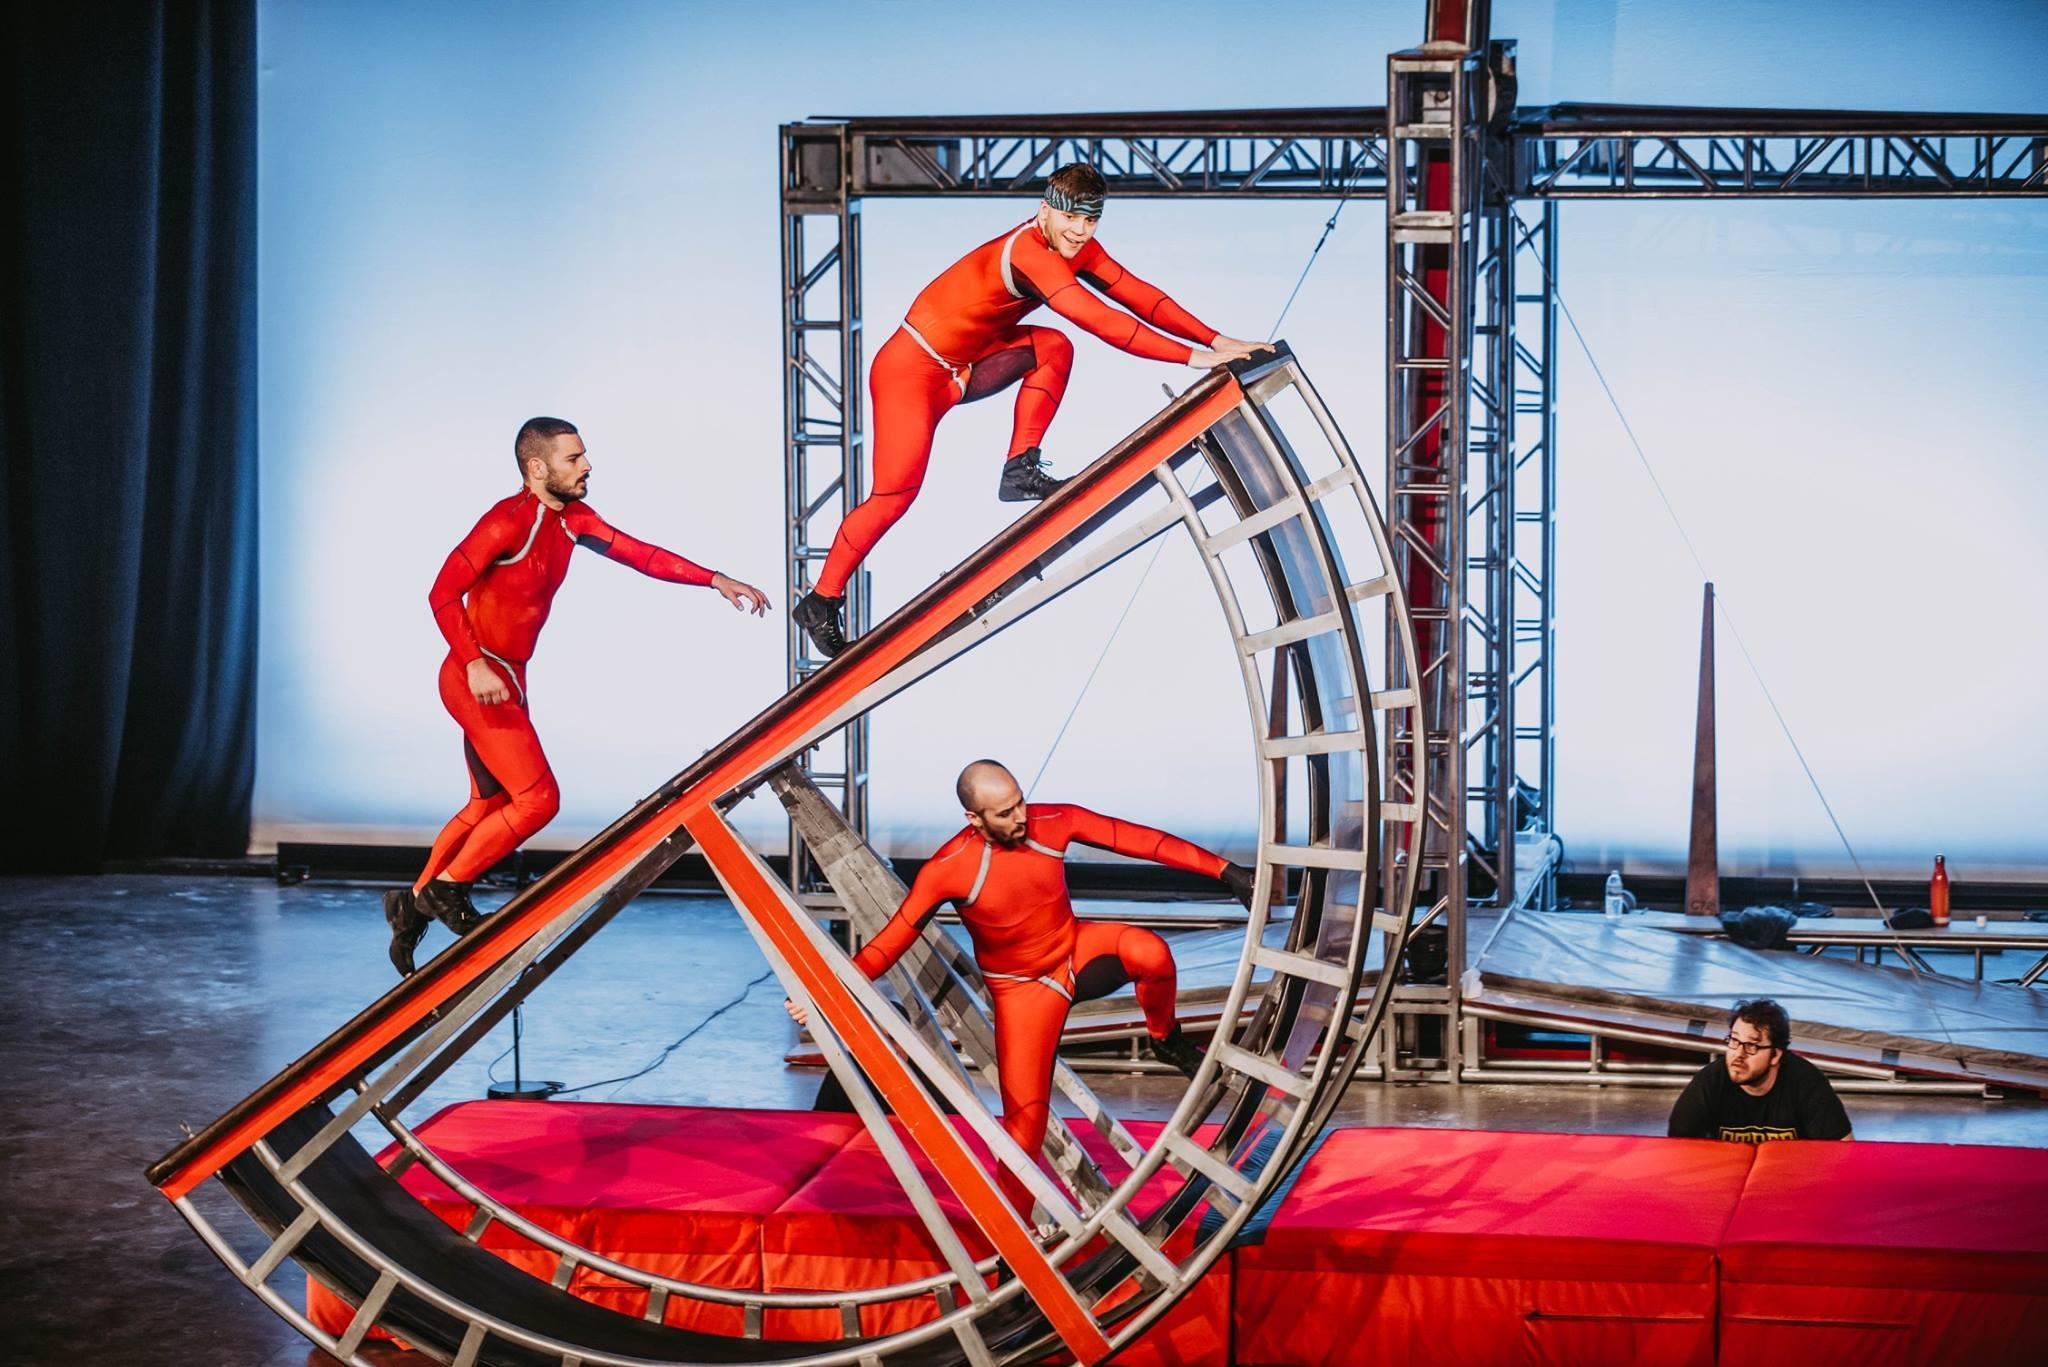 STREB%20EXTREME%20ACTION